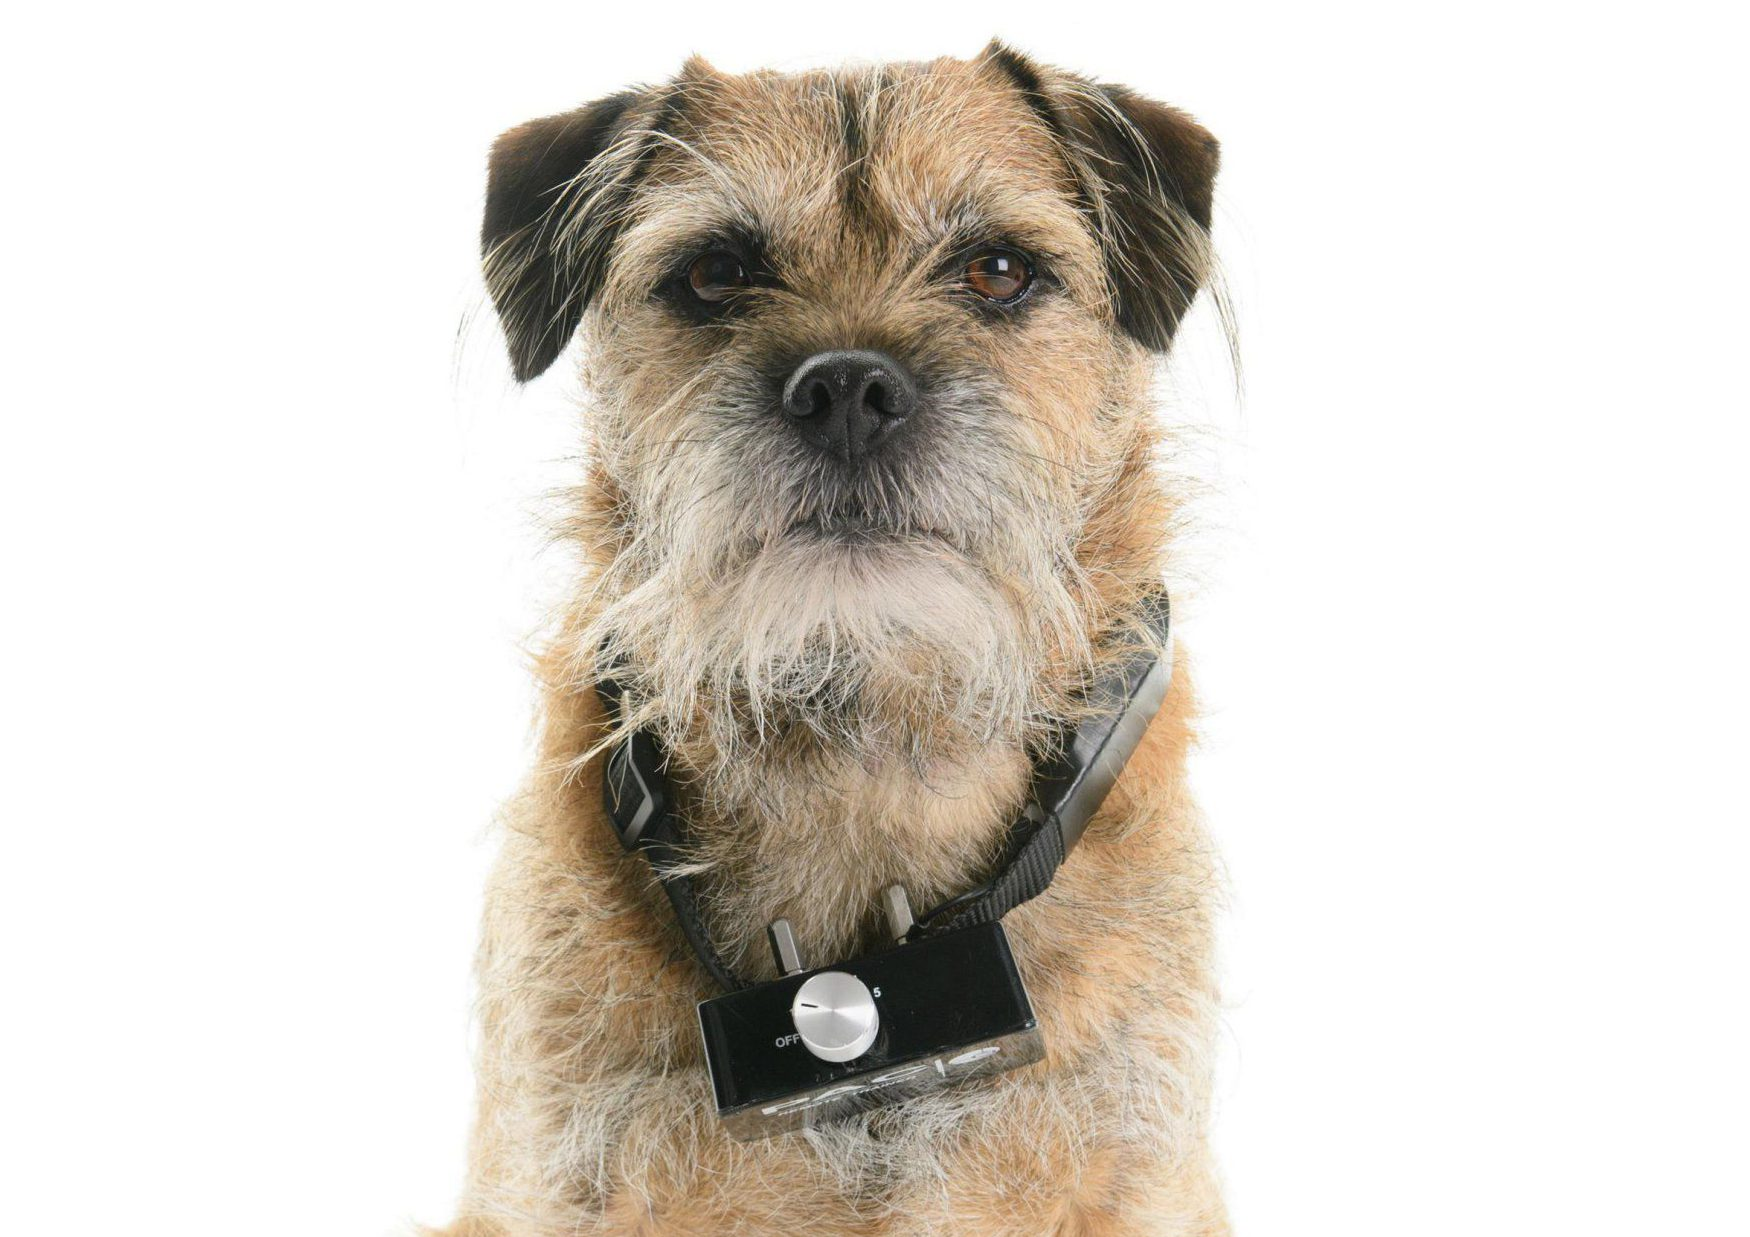 """Undated handout photo issued by Dogs Trust of a dog wearing an electric shock collar. Electric shock collars for dogs and cats are set to be banned, Environment Secretary Michael Gove is expected to announce this week. PRESS ASSOCIATION Photo. Issue date: Sunday August 26, 2018. Used as training devices, the remote controlled collars can trigger an electric pulse of varying strength, or spray noxious chemicals at the animal. Mr Gove, who has described Britain as a """"nation of animal lovers"""", is imminently poised to reveal the move to prohibit their sale, the Mail on Sunday has reported. See PA story POLITICS Collars. Photo credit should read: Clive Tagg/Dogs Trust /PA Wire NOTE TO EDITORS: This handout photo may only be used in for editorial reporting purposes for the contemporaneous illustration of events, things or the people in the image or facts mentioned in the caption. Reuse of the picture may require further permission from the copyright holder."""